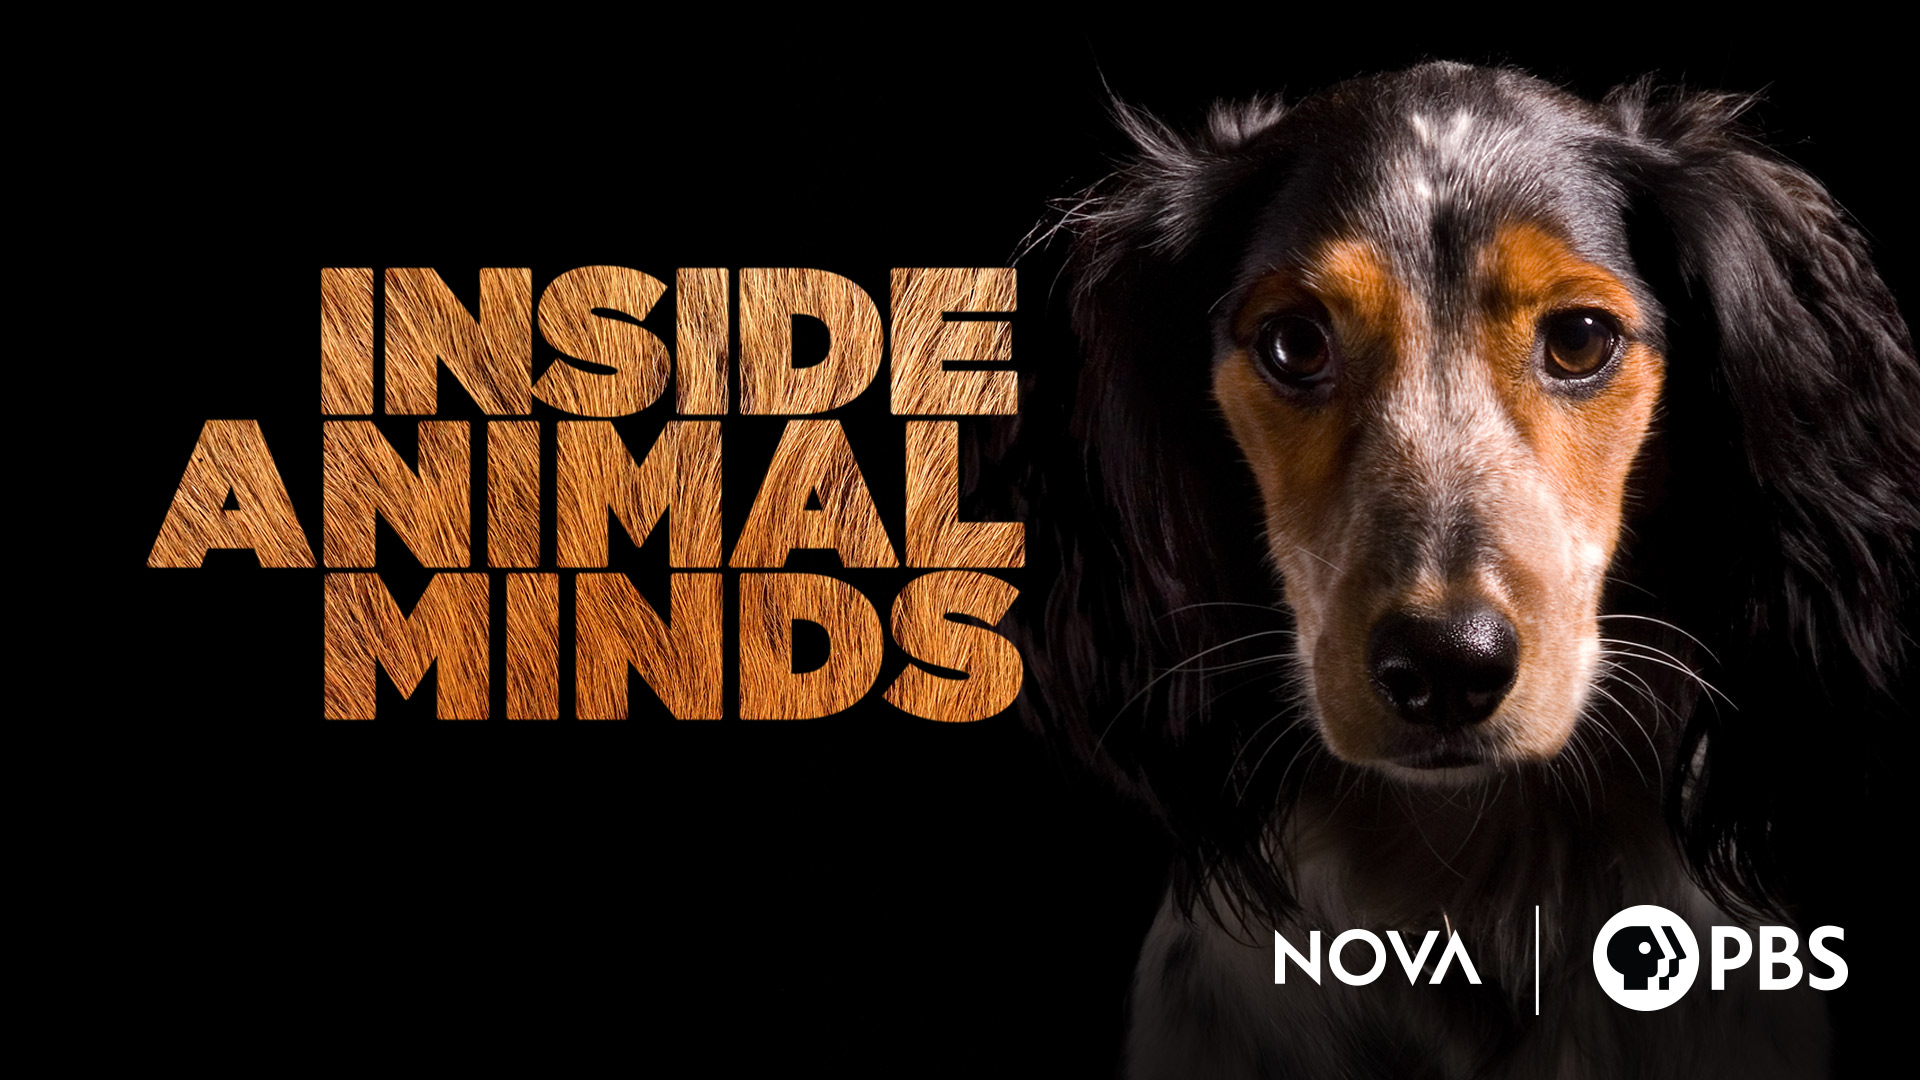 NOVA: Inside Animal Minds